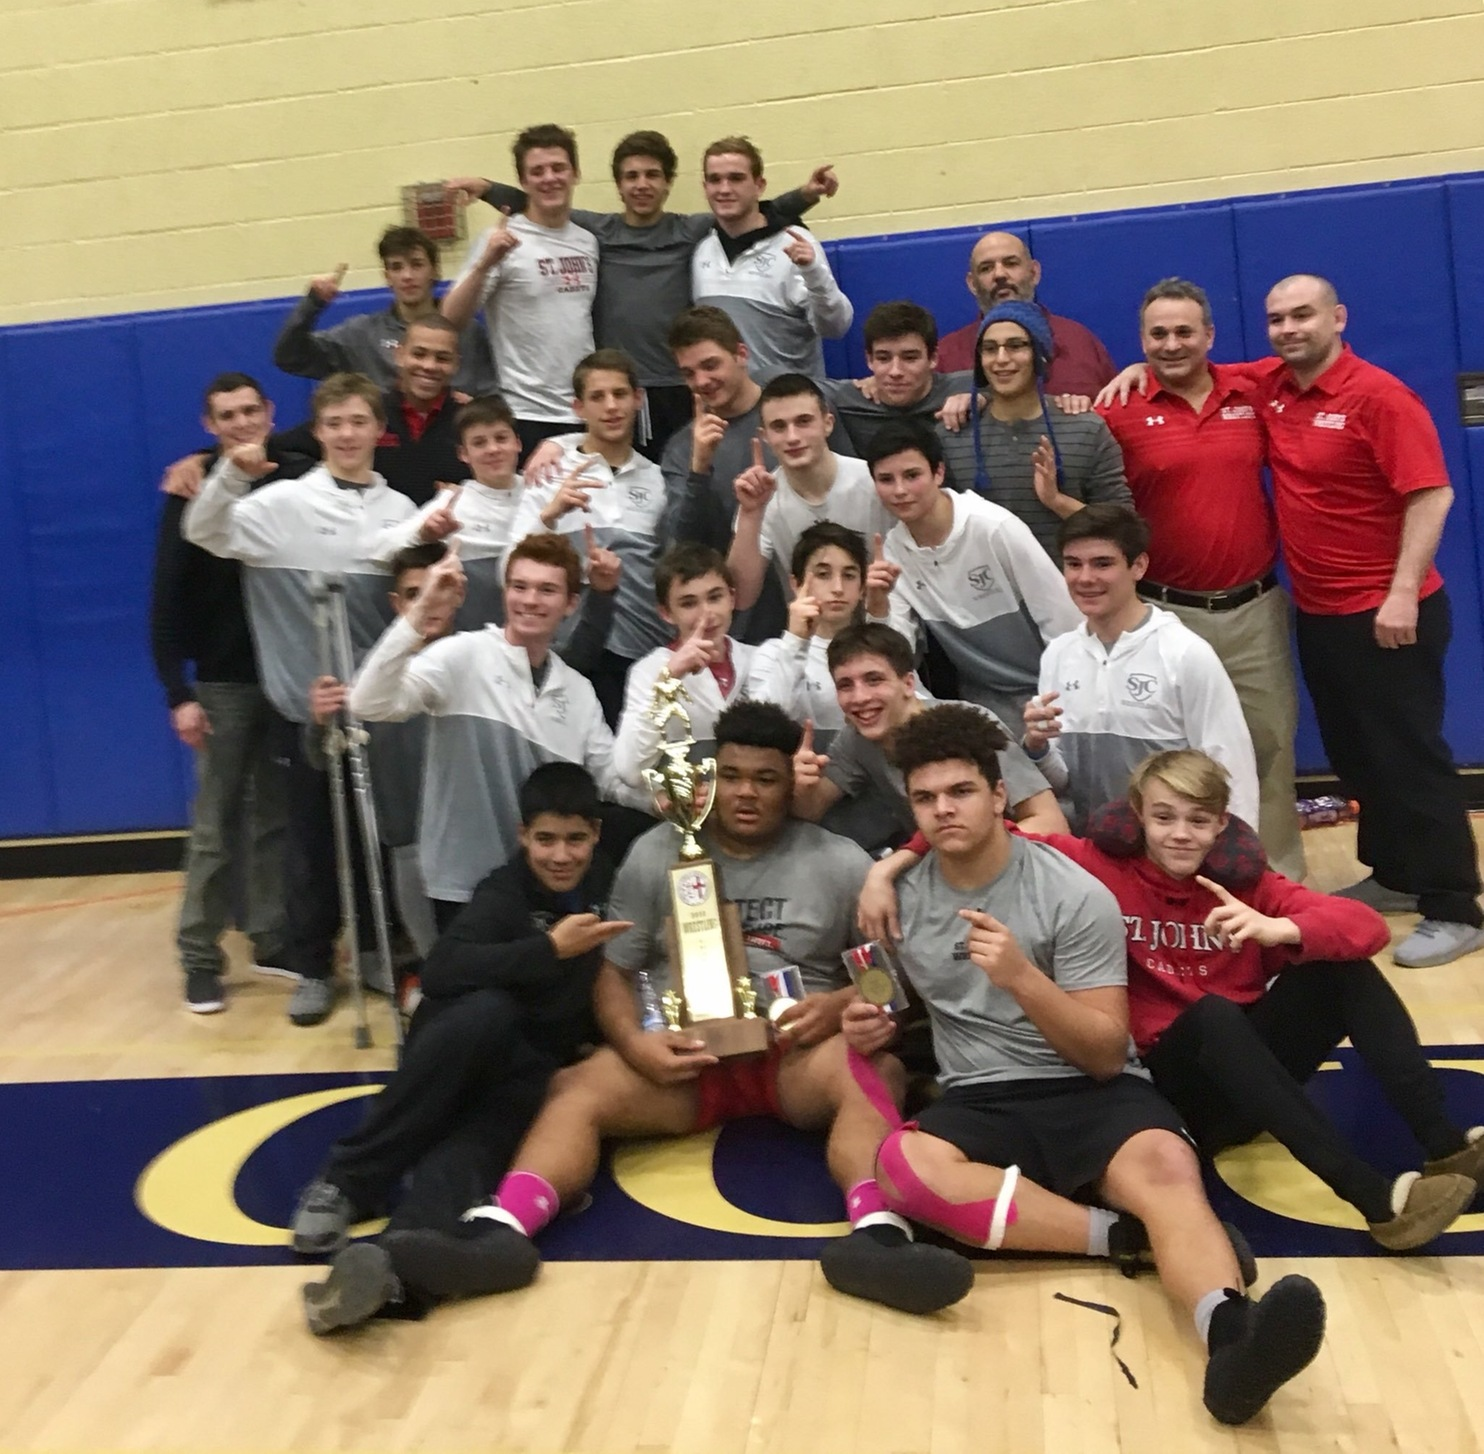 Things get a little chippy at WCAC wrestling meet as St. John's wins team title